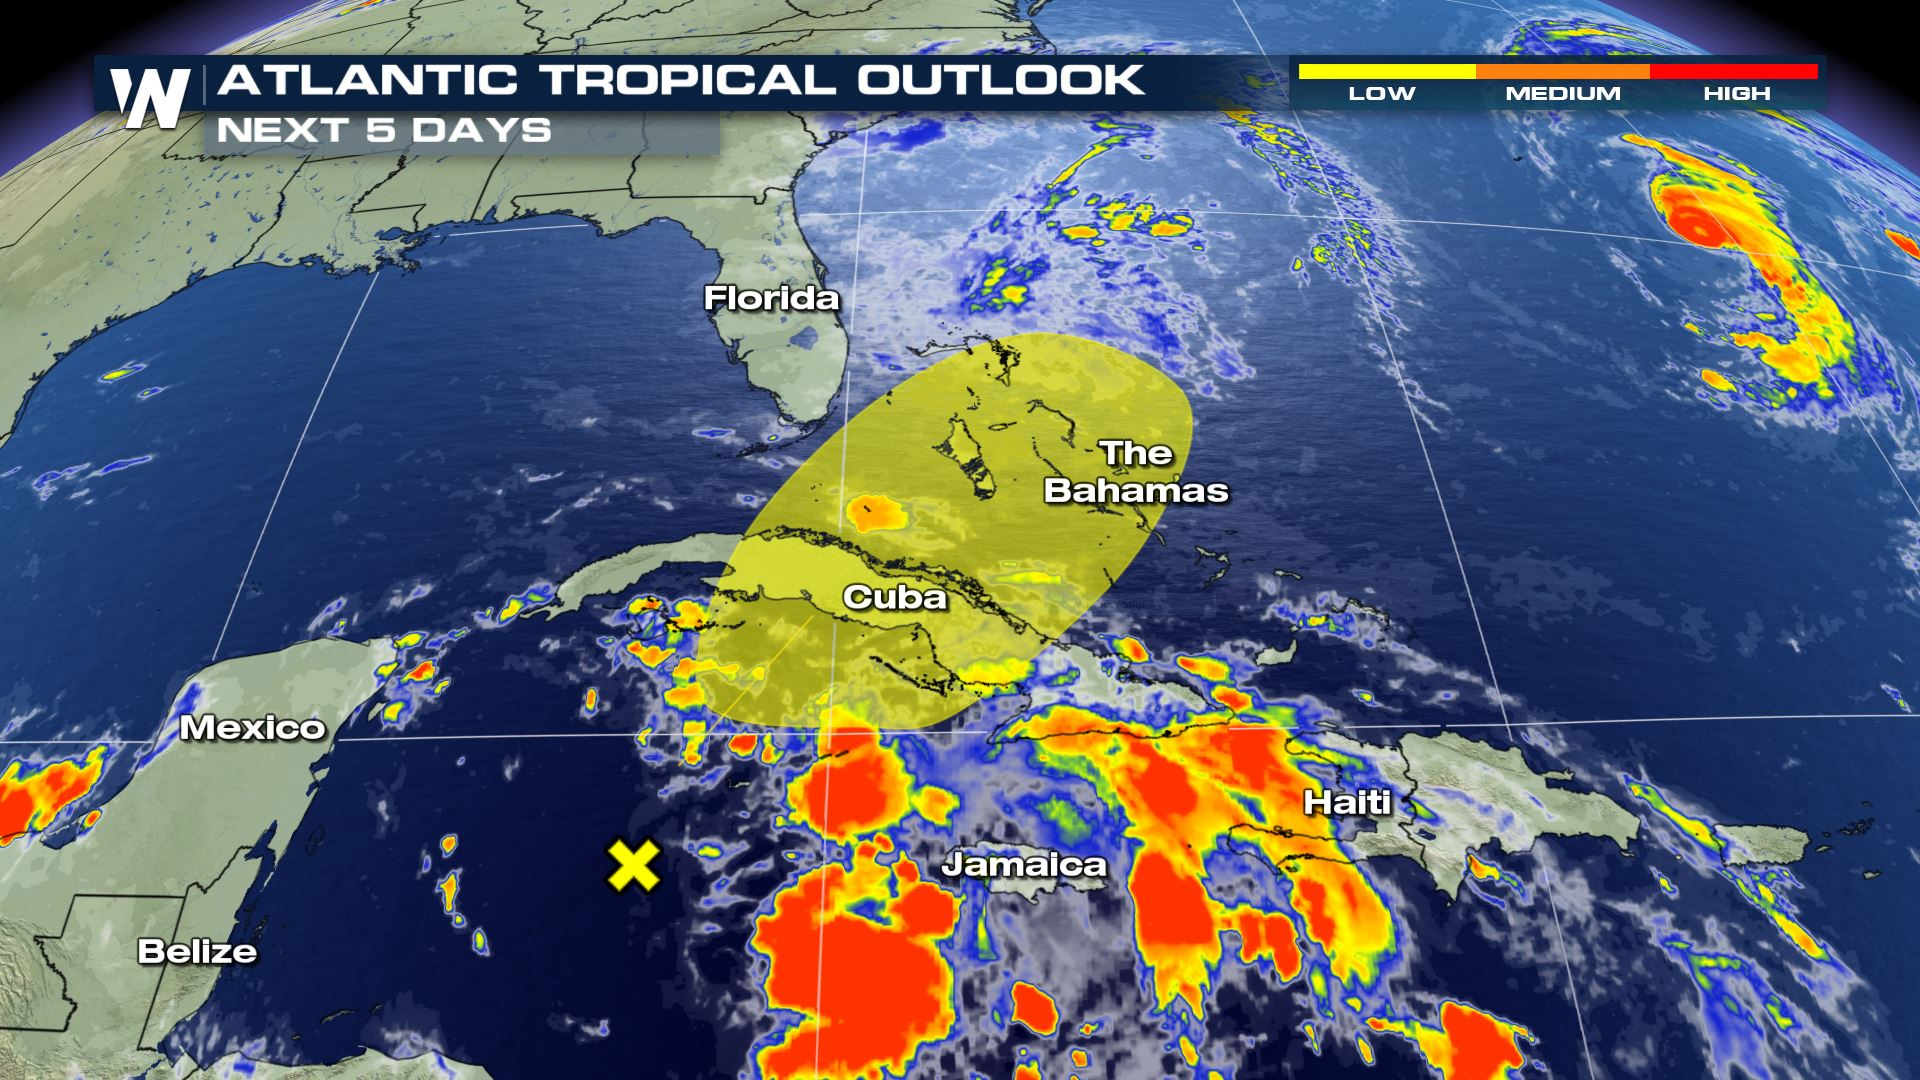 Watching the tropics for potential development